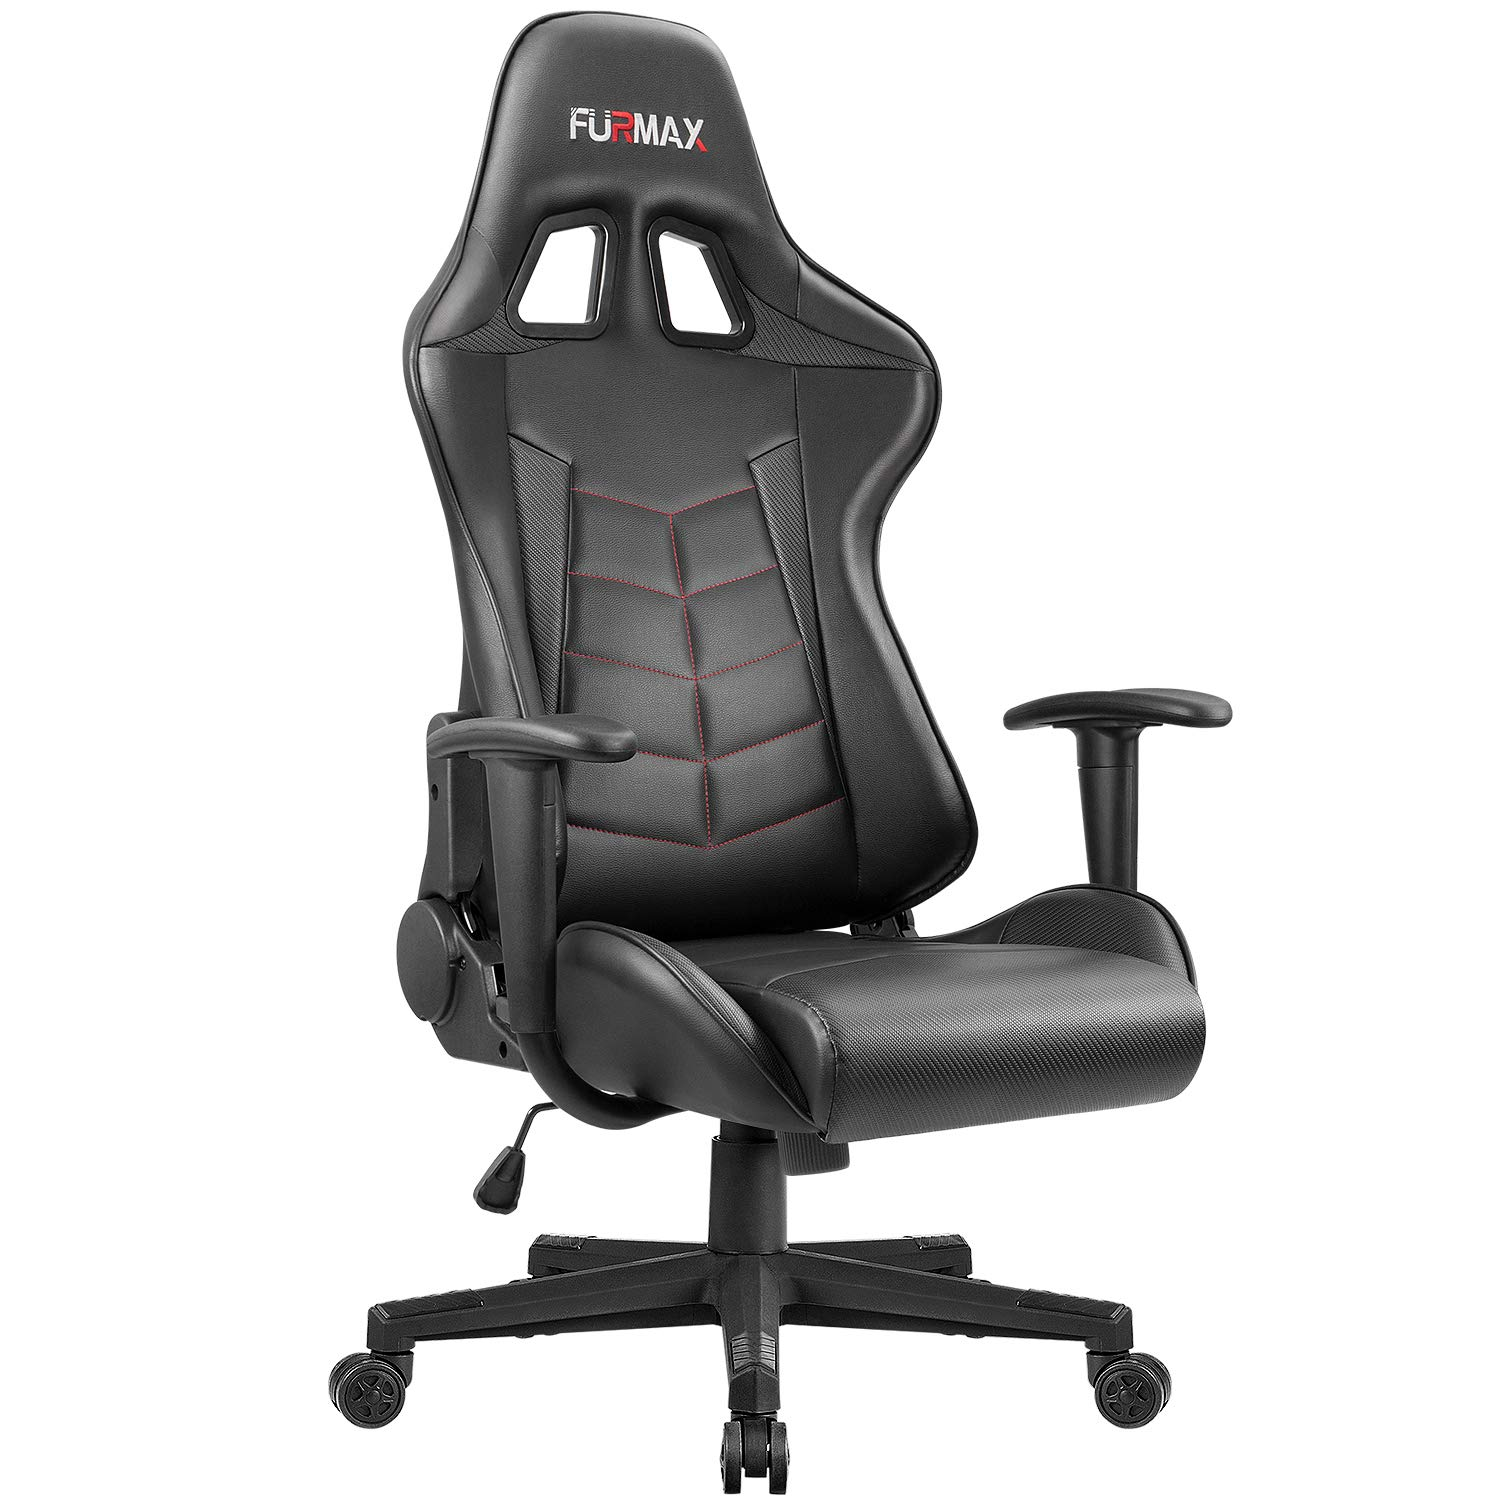 Furmax Gaming Office Chair Ergonomic High-back Racing Style Adjustable Height Executive Computer Chair,PU Leather Swivel Desk Chair with Backrest and Lumbar Support (Black)